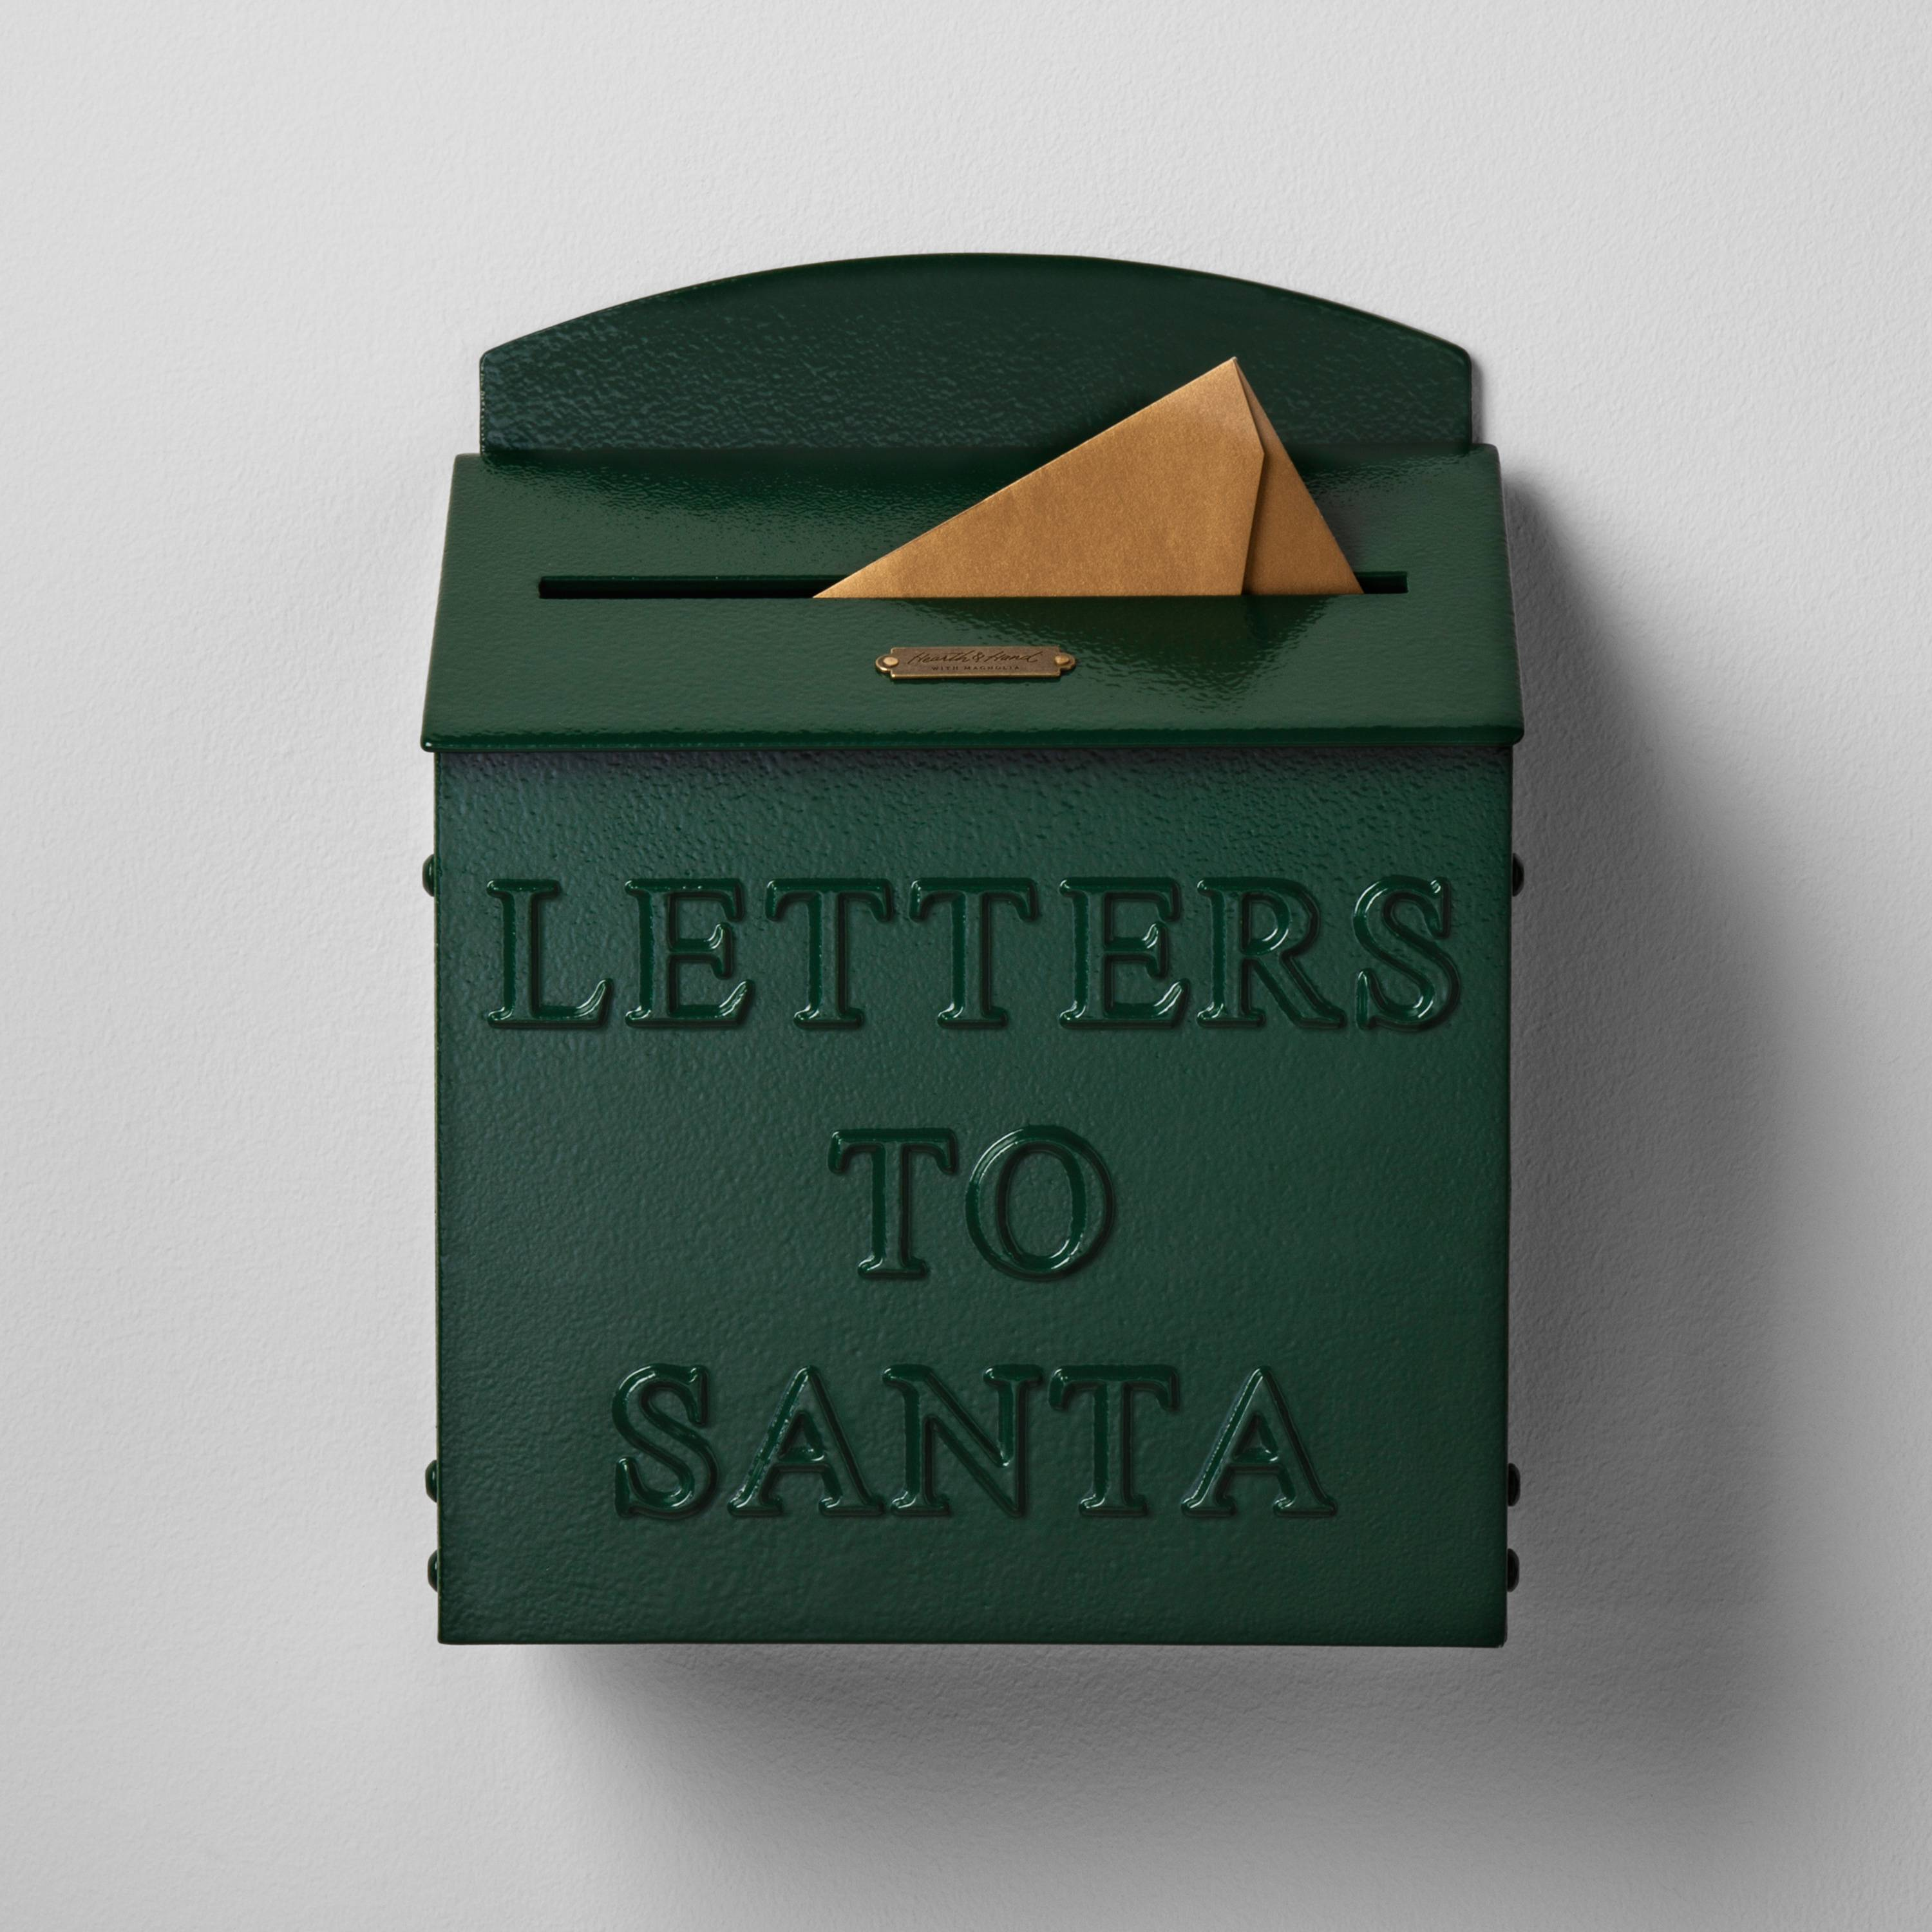 Hearth and Hand Line at target is on trend with it's green Letter's to Santa Mailbox